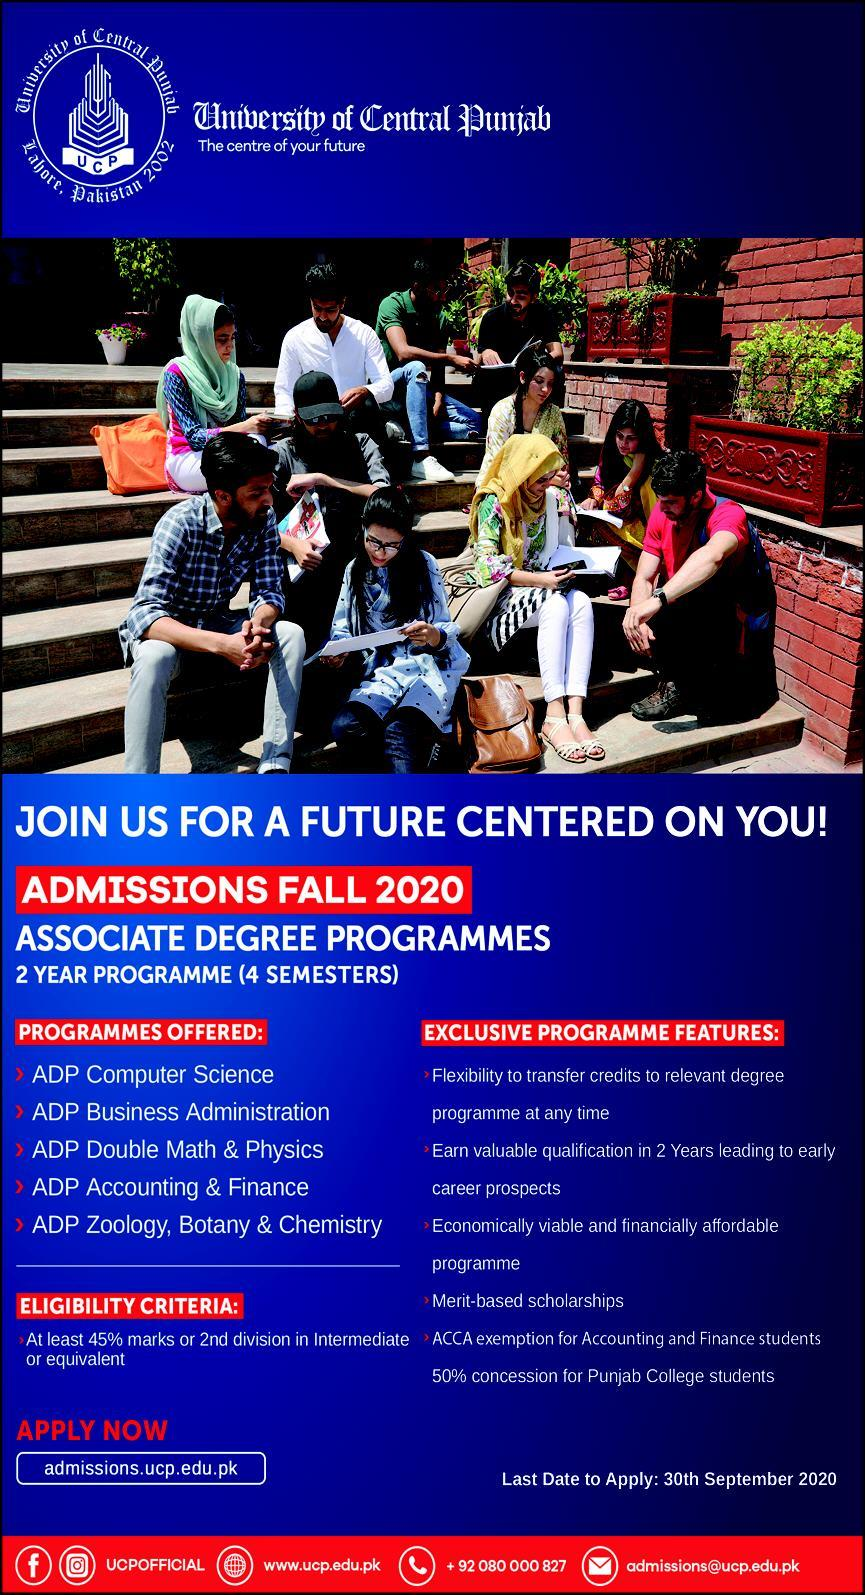 The University of Central Punjab admission2020